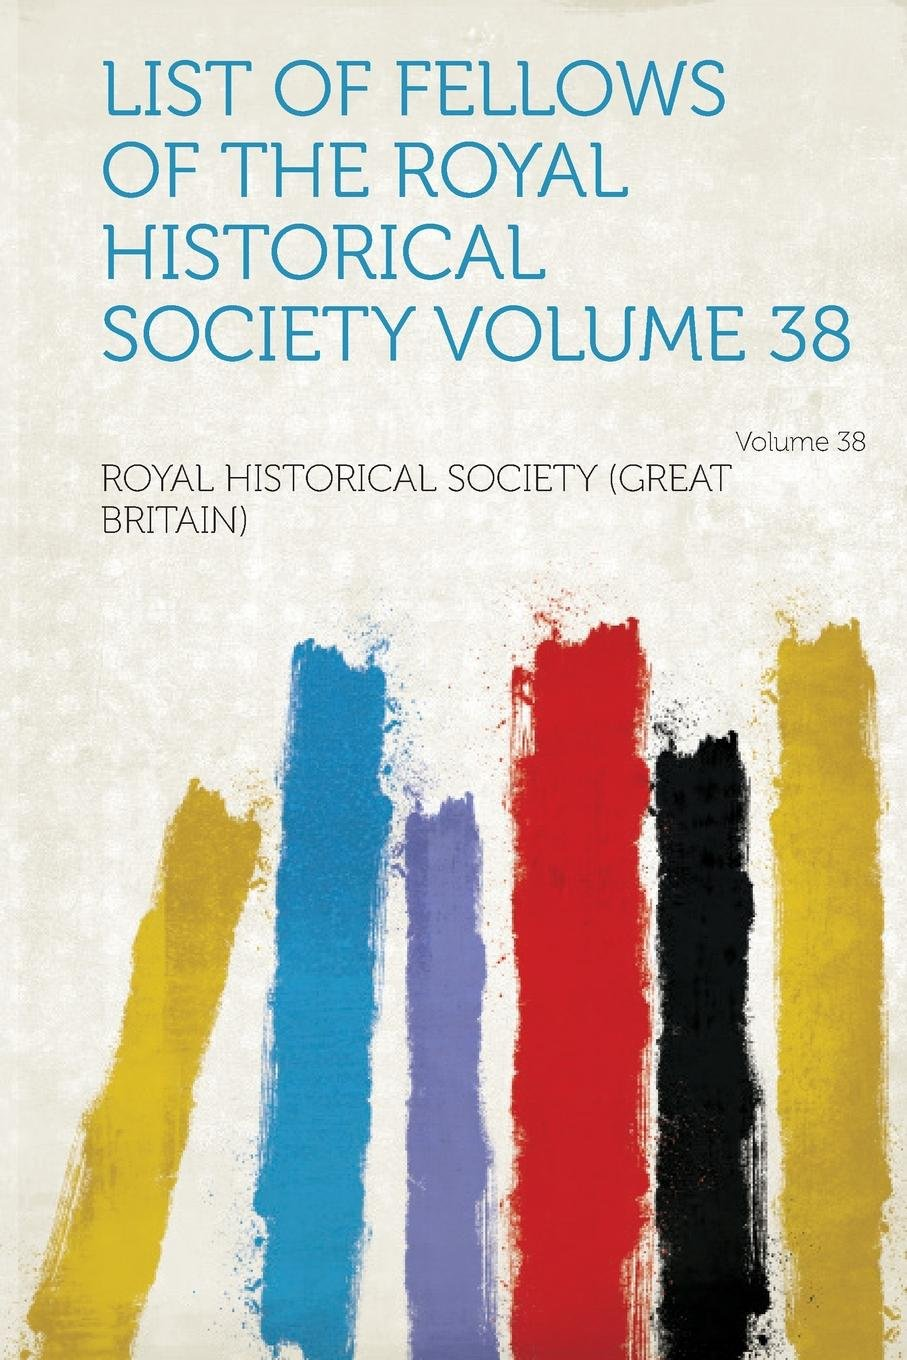 Download List of Fellows of the Royal Historical Society Volume 38 PDF ePub fb2 ebook